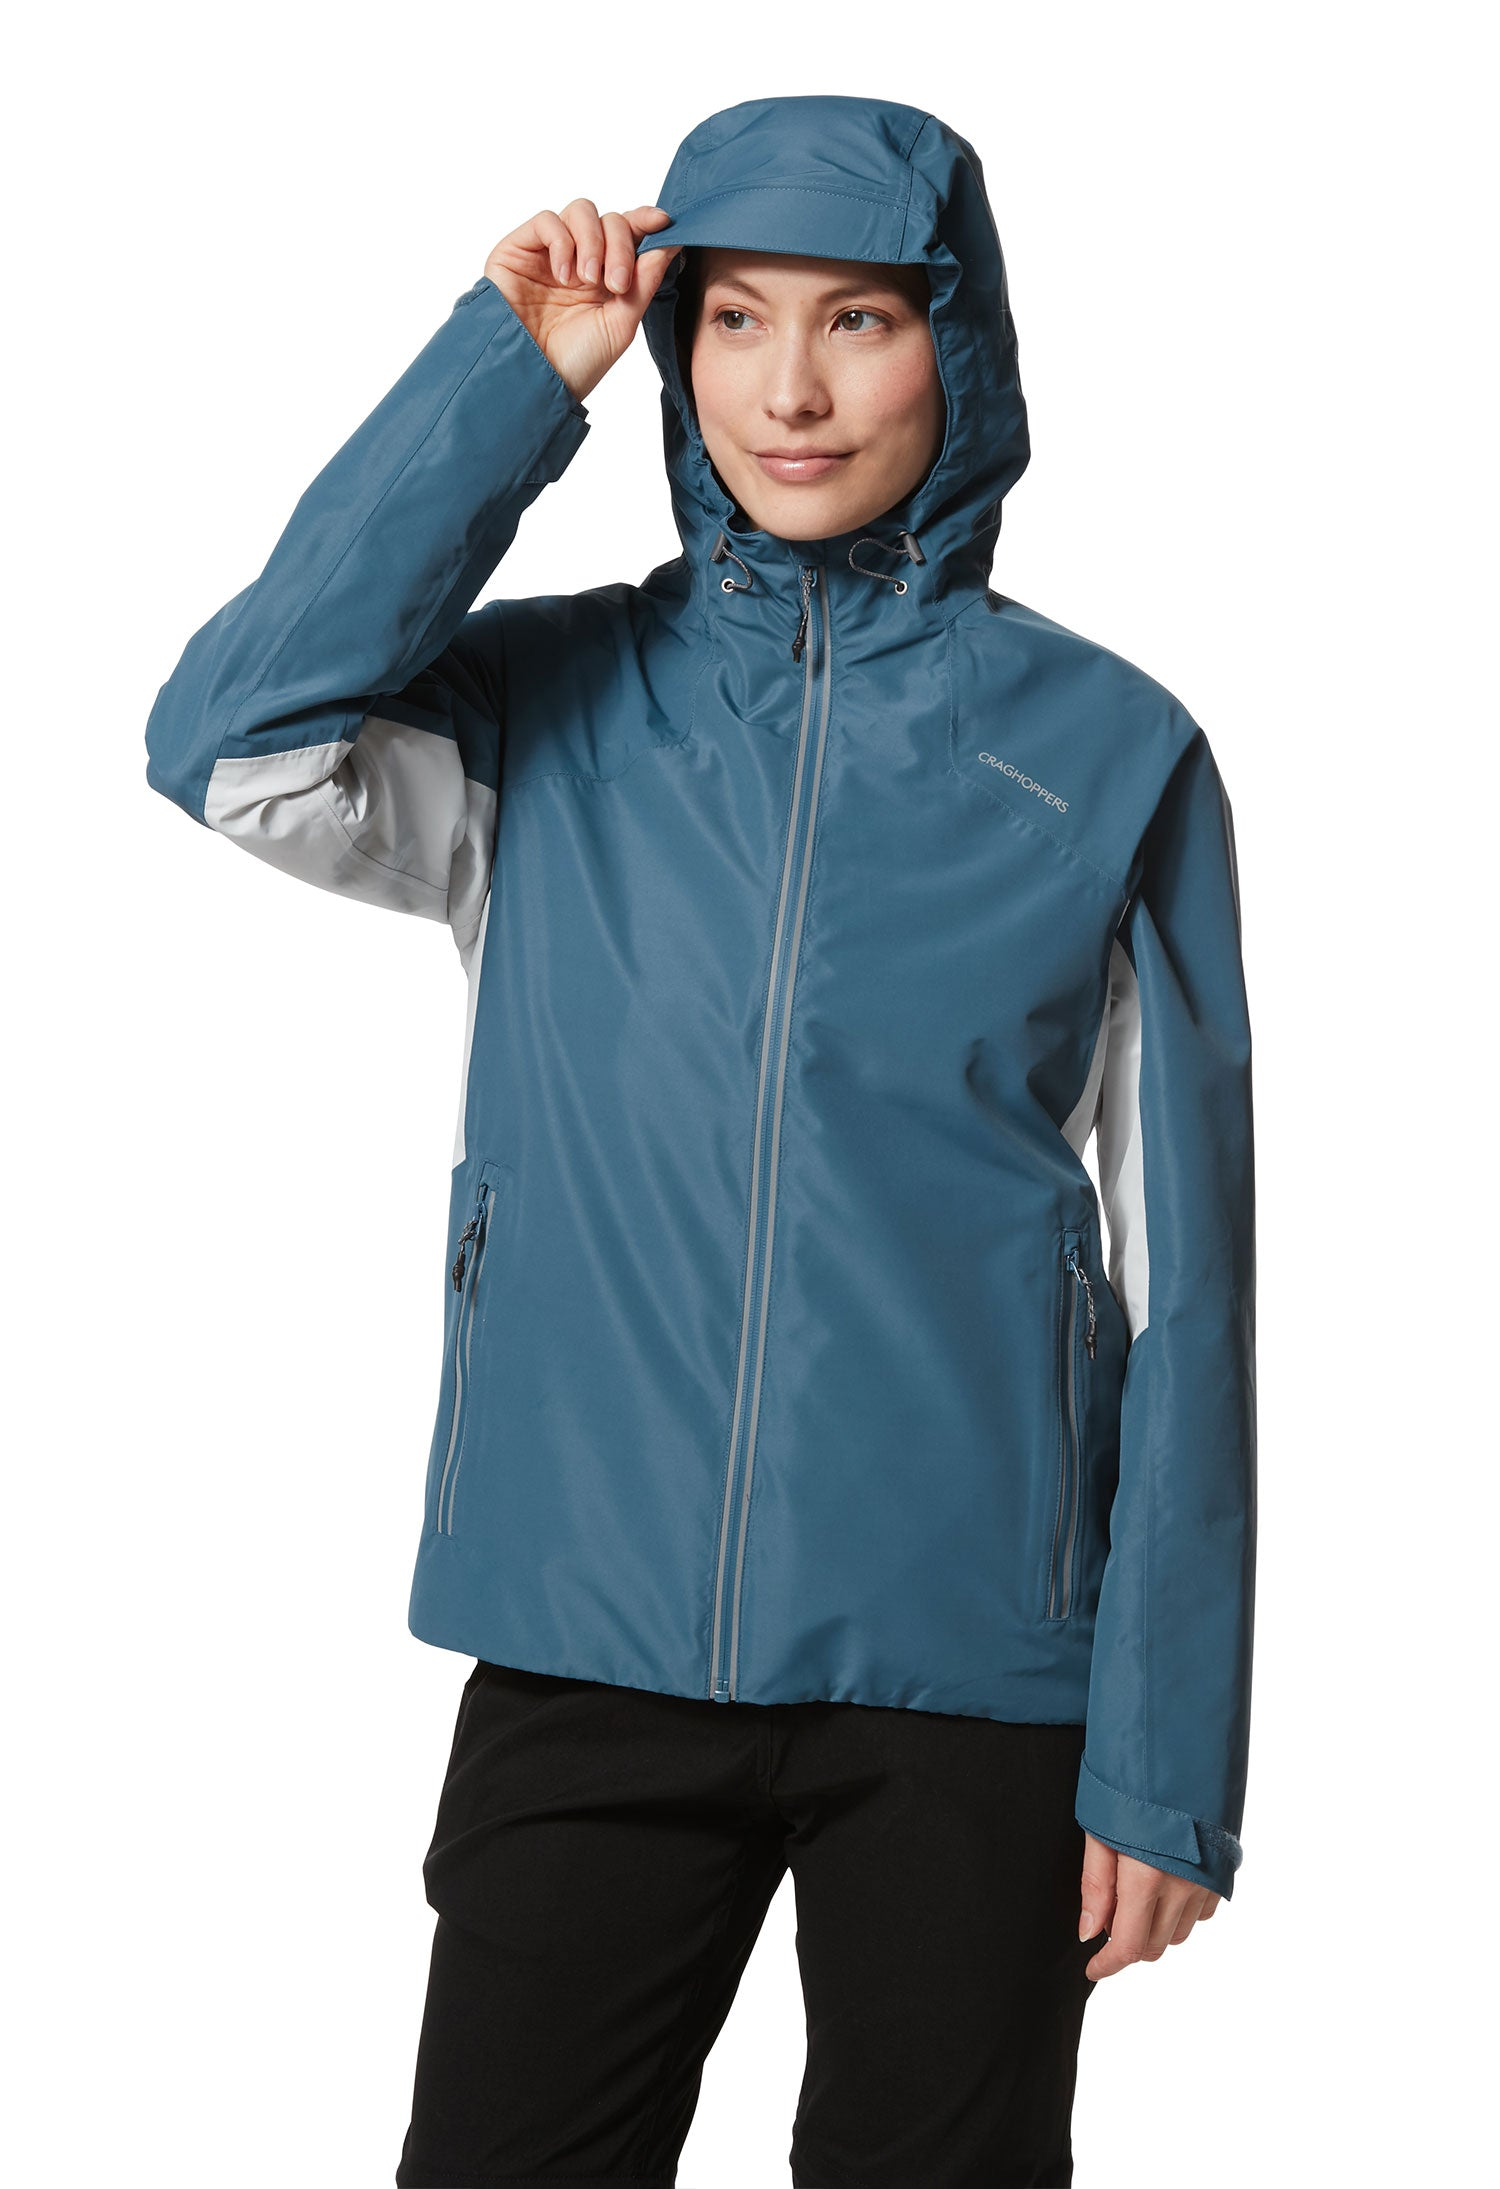 Nood up Teal Horizon Waterproof Women's Jacket by Craghoppers